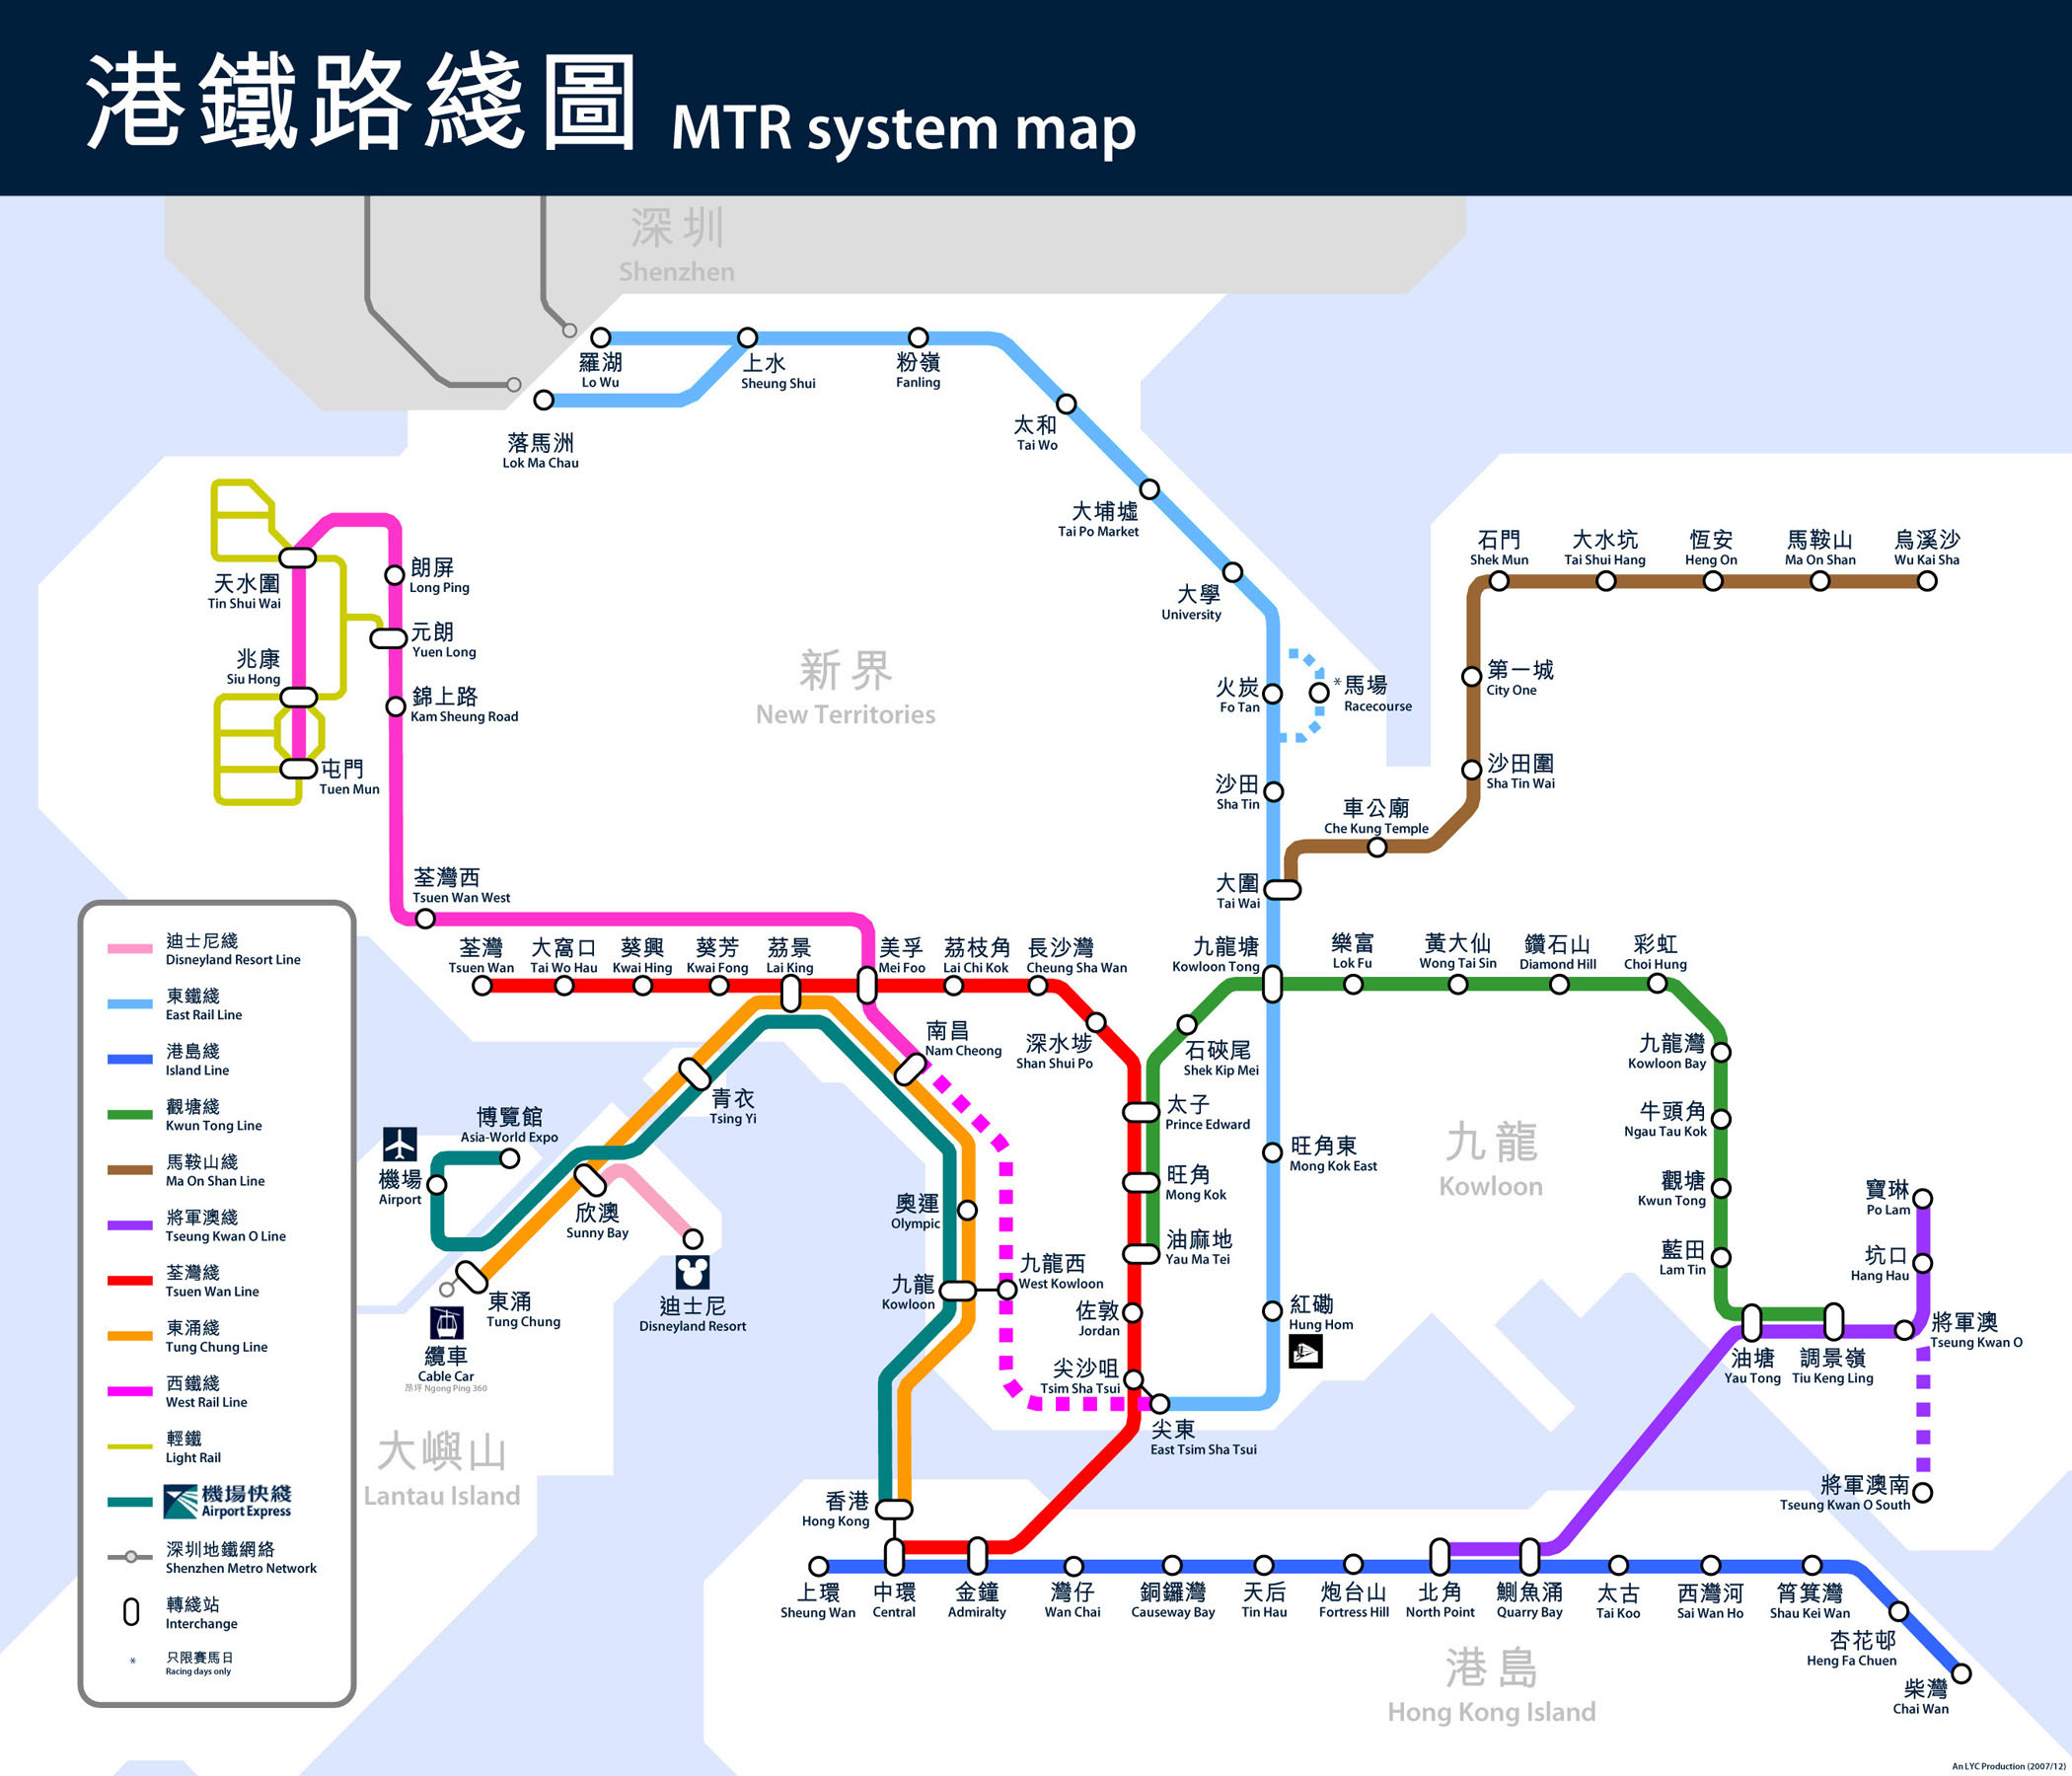 File:MTR System Map 2008.jpg - Wikimedia Commons on sheung wan, metro de santiago map, tibet and surrounding area map, shenzhen metro, light rail, seoul metropolitan subway, mtu map, dubai metro, montreal metro, delhi mass rapid transit system, airport express, rapid transit, moscow metro, island line, tianjin metro, hung hom, port of shanghai map, septa map, hung hom station map, mus map, chongqing rail transit map, changsha metro map, massachusetts bay transportation authority map, west rail line map, calgary transit map, mc map, penn's landing map, tokyo subway, beijing subway, state railway of thailand map, mta map, shanghai metro, san francisco muni map, hong kong tramways, hk map, tokyo metro, rio de janeiro metro map, guangzhou metro, barents sea map,